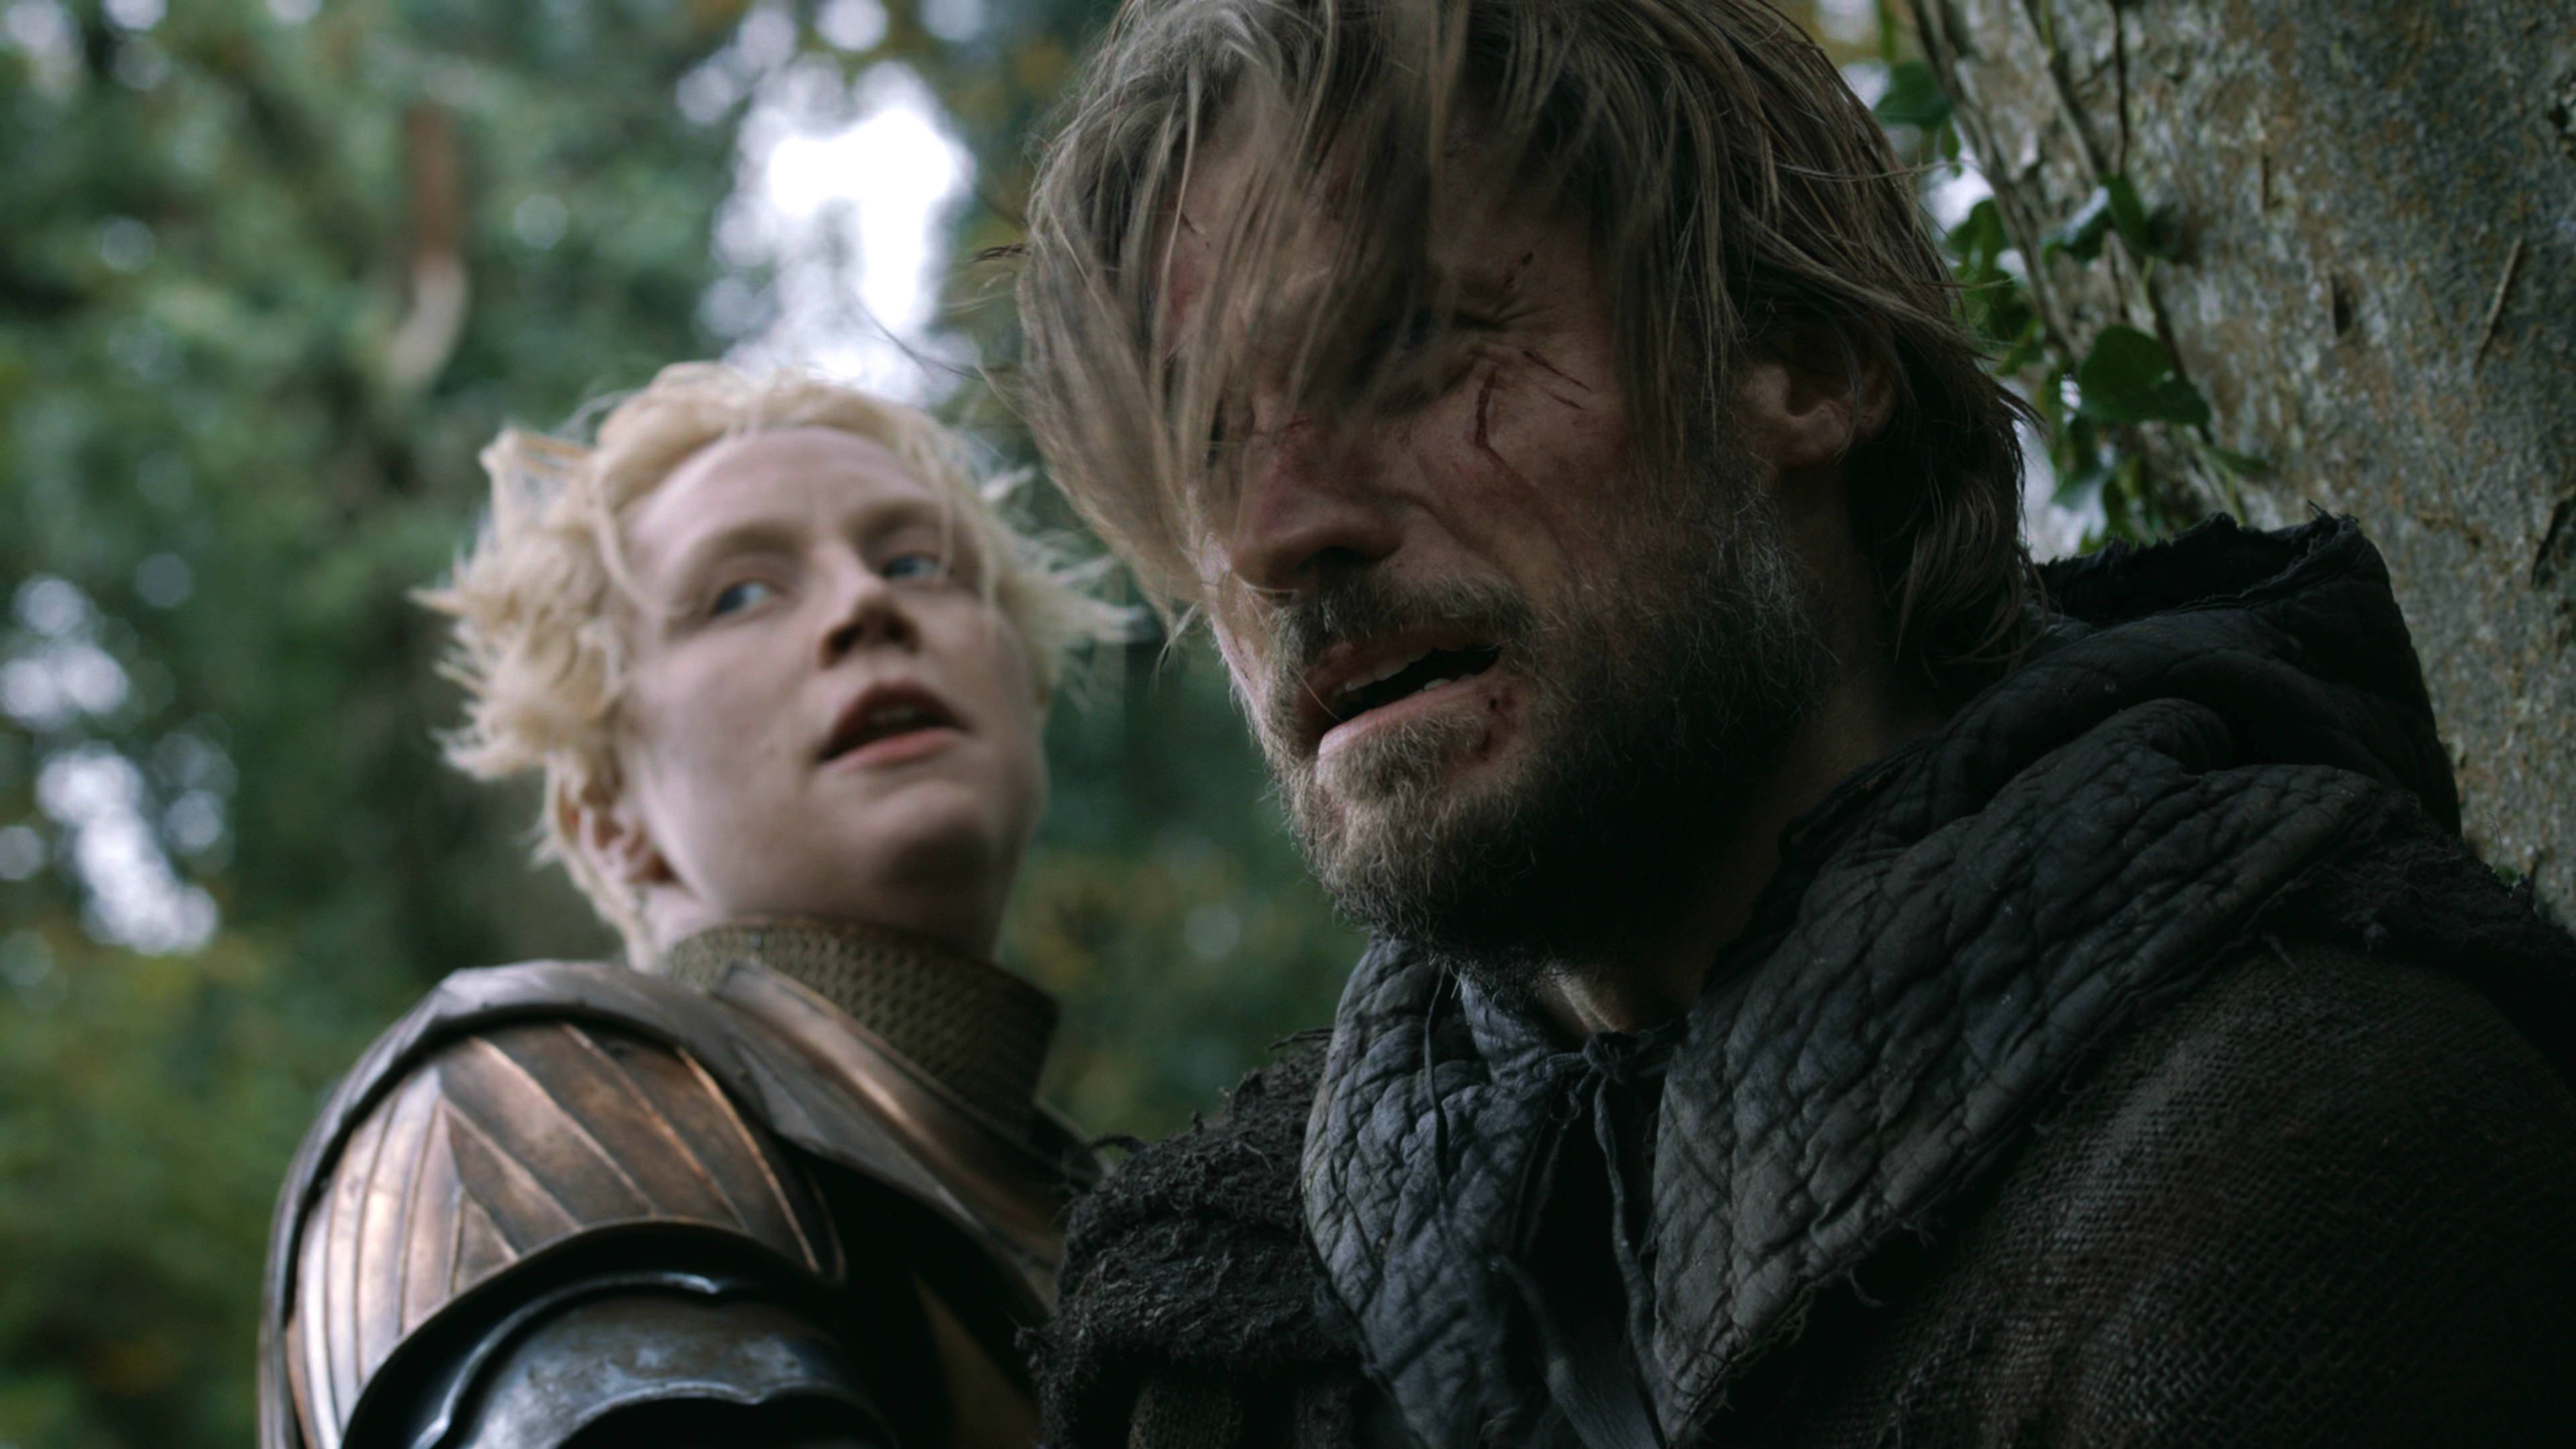 Game Of Thrones Season 2 – 4k/UHD Screencaps Complete